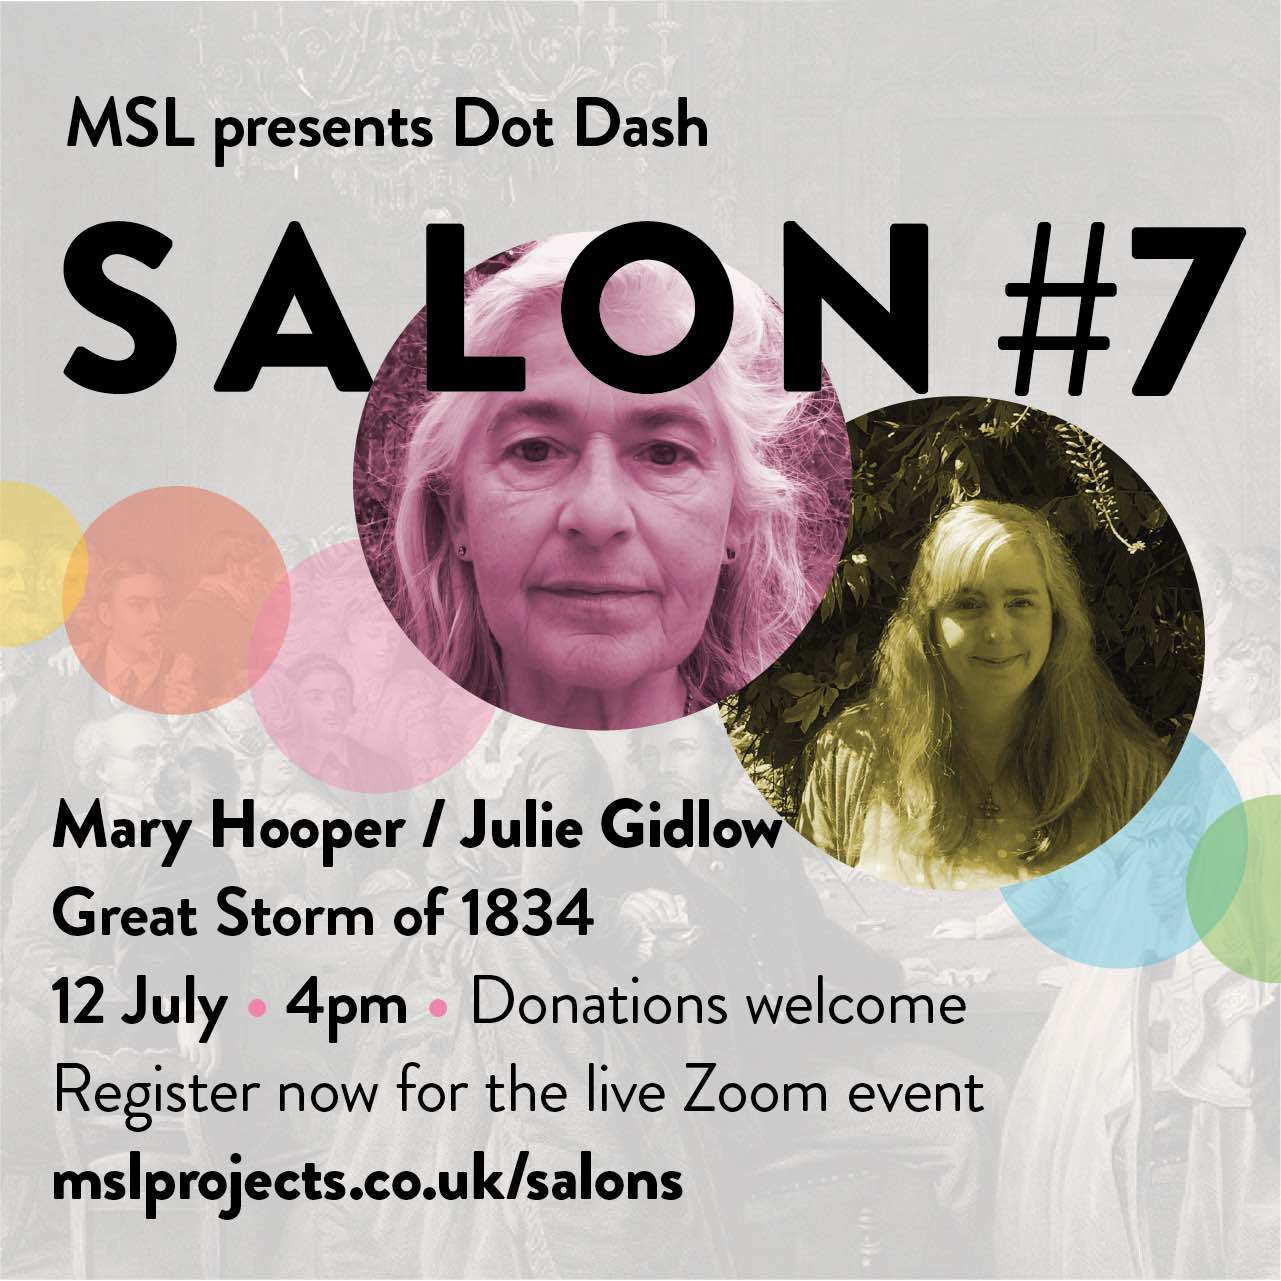 Salon 7 Great Storm of 1834 Sunday 12 July 4pm for MSL Projects